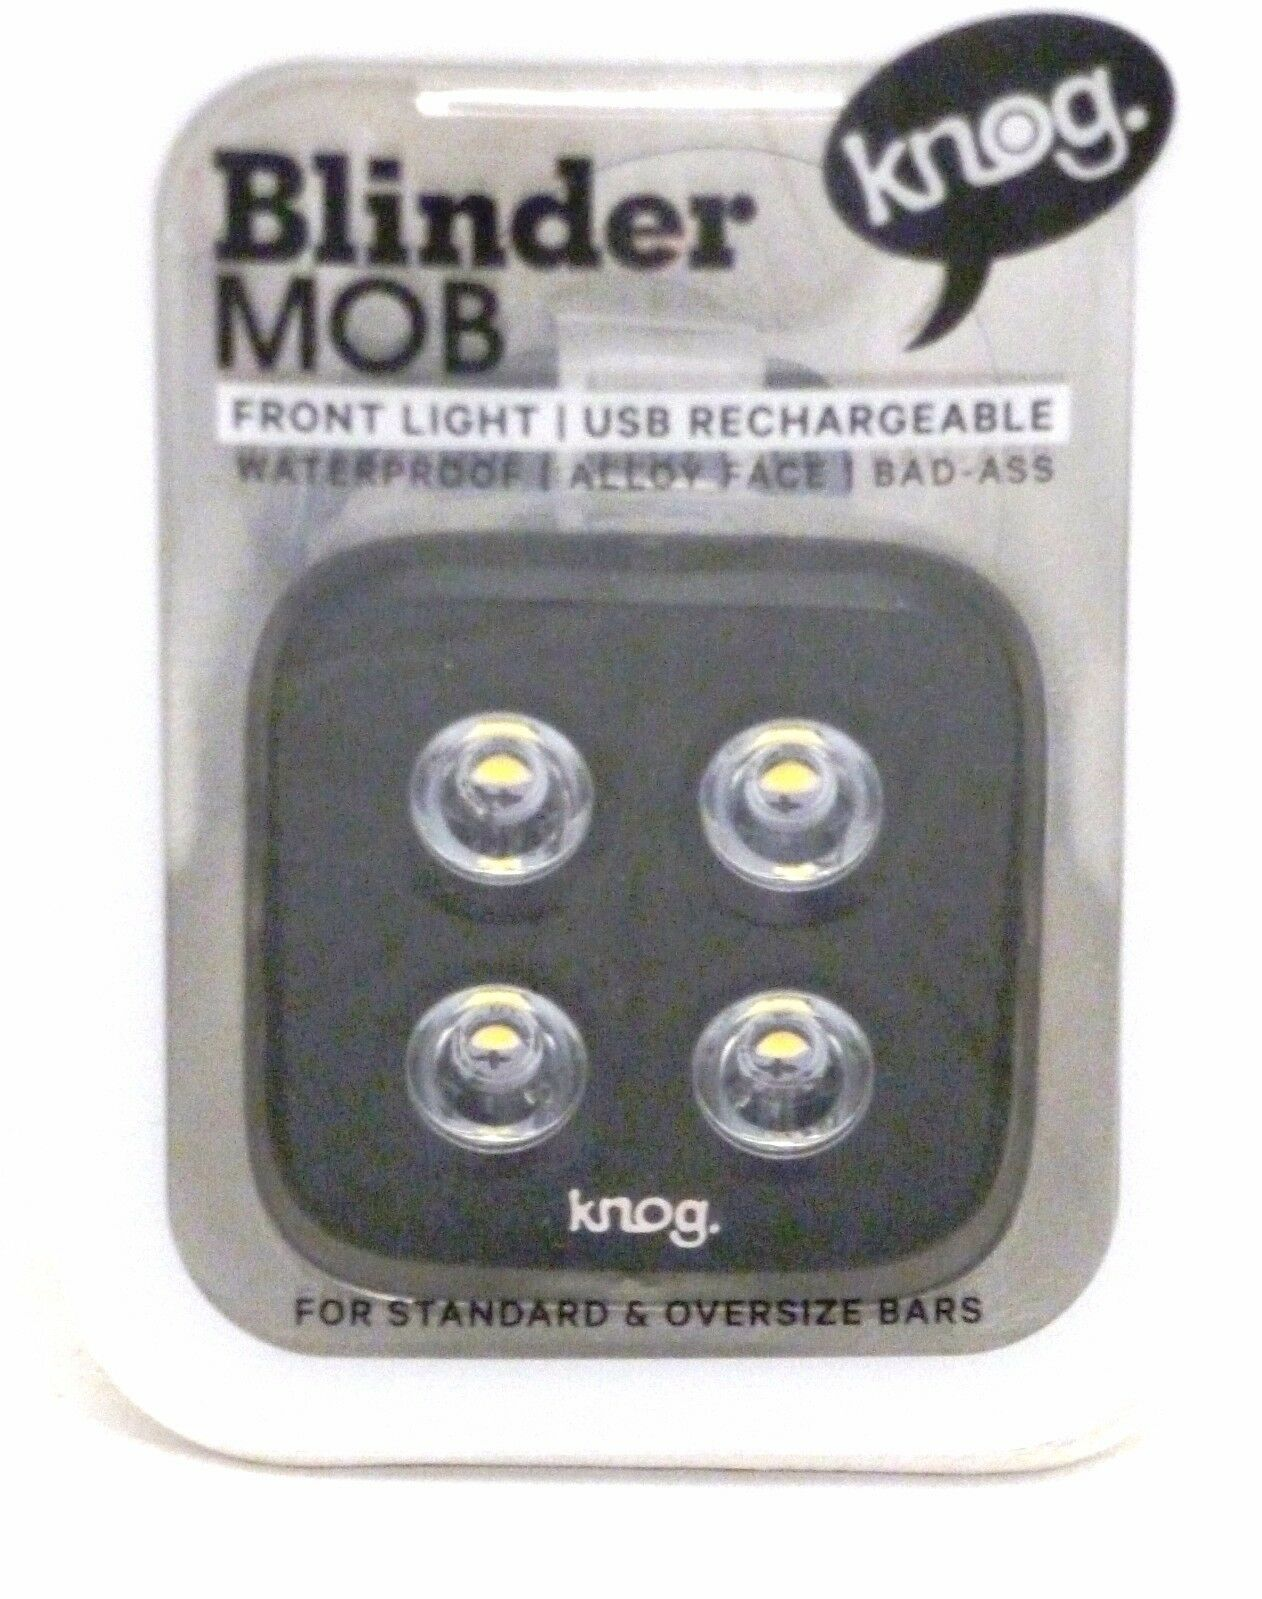 Knog Blinder MOB TheFace 4 Dot USB Rechargeable